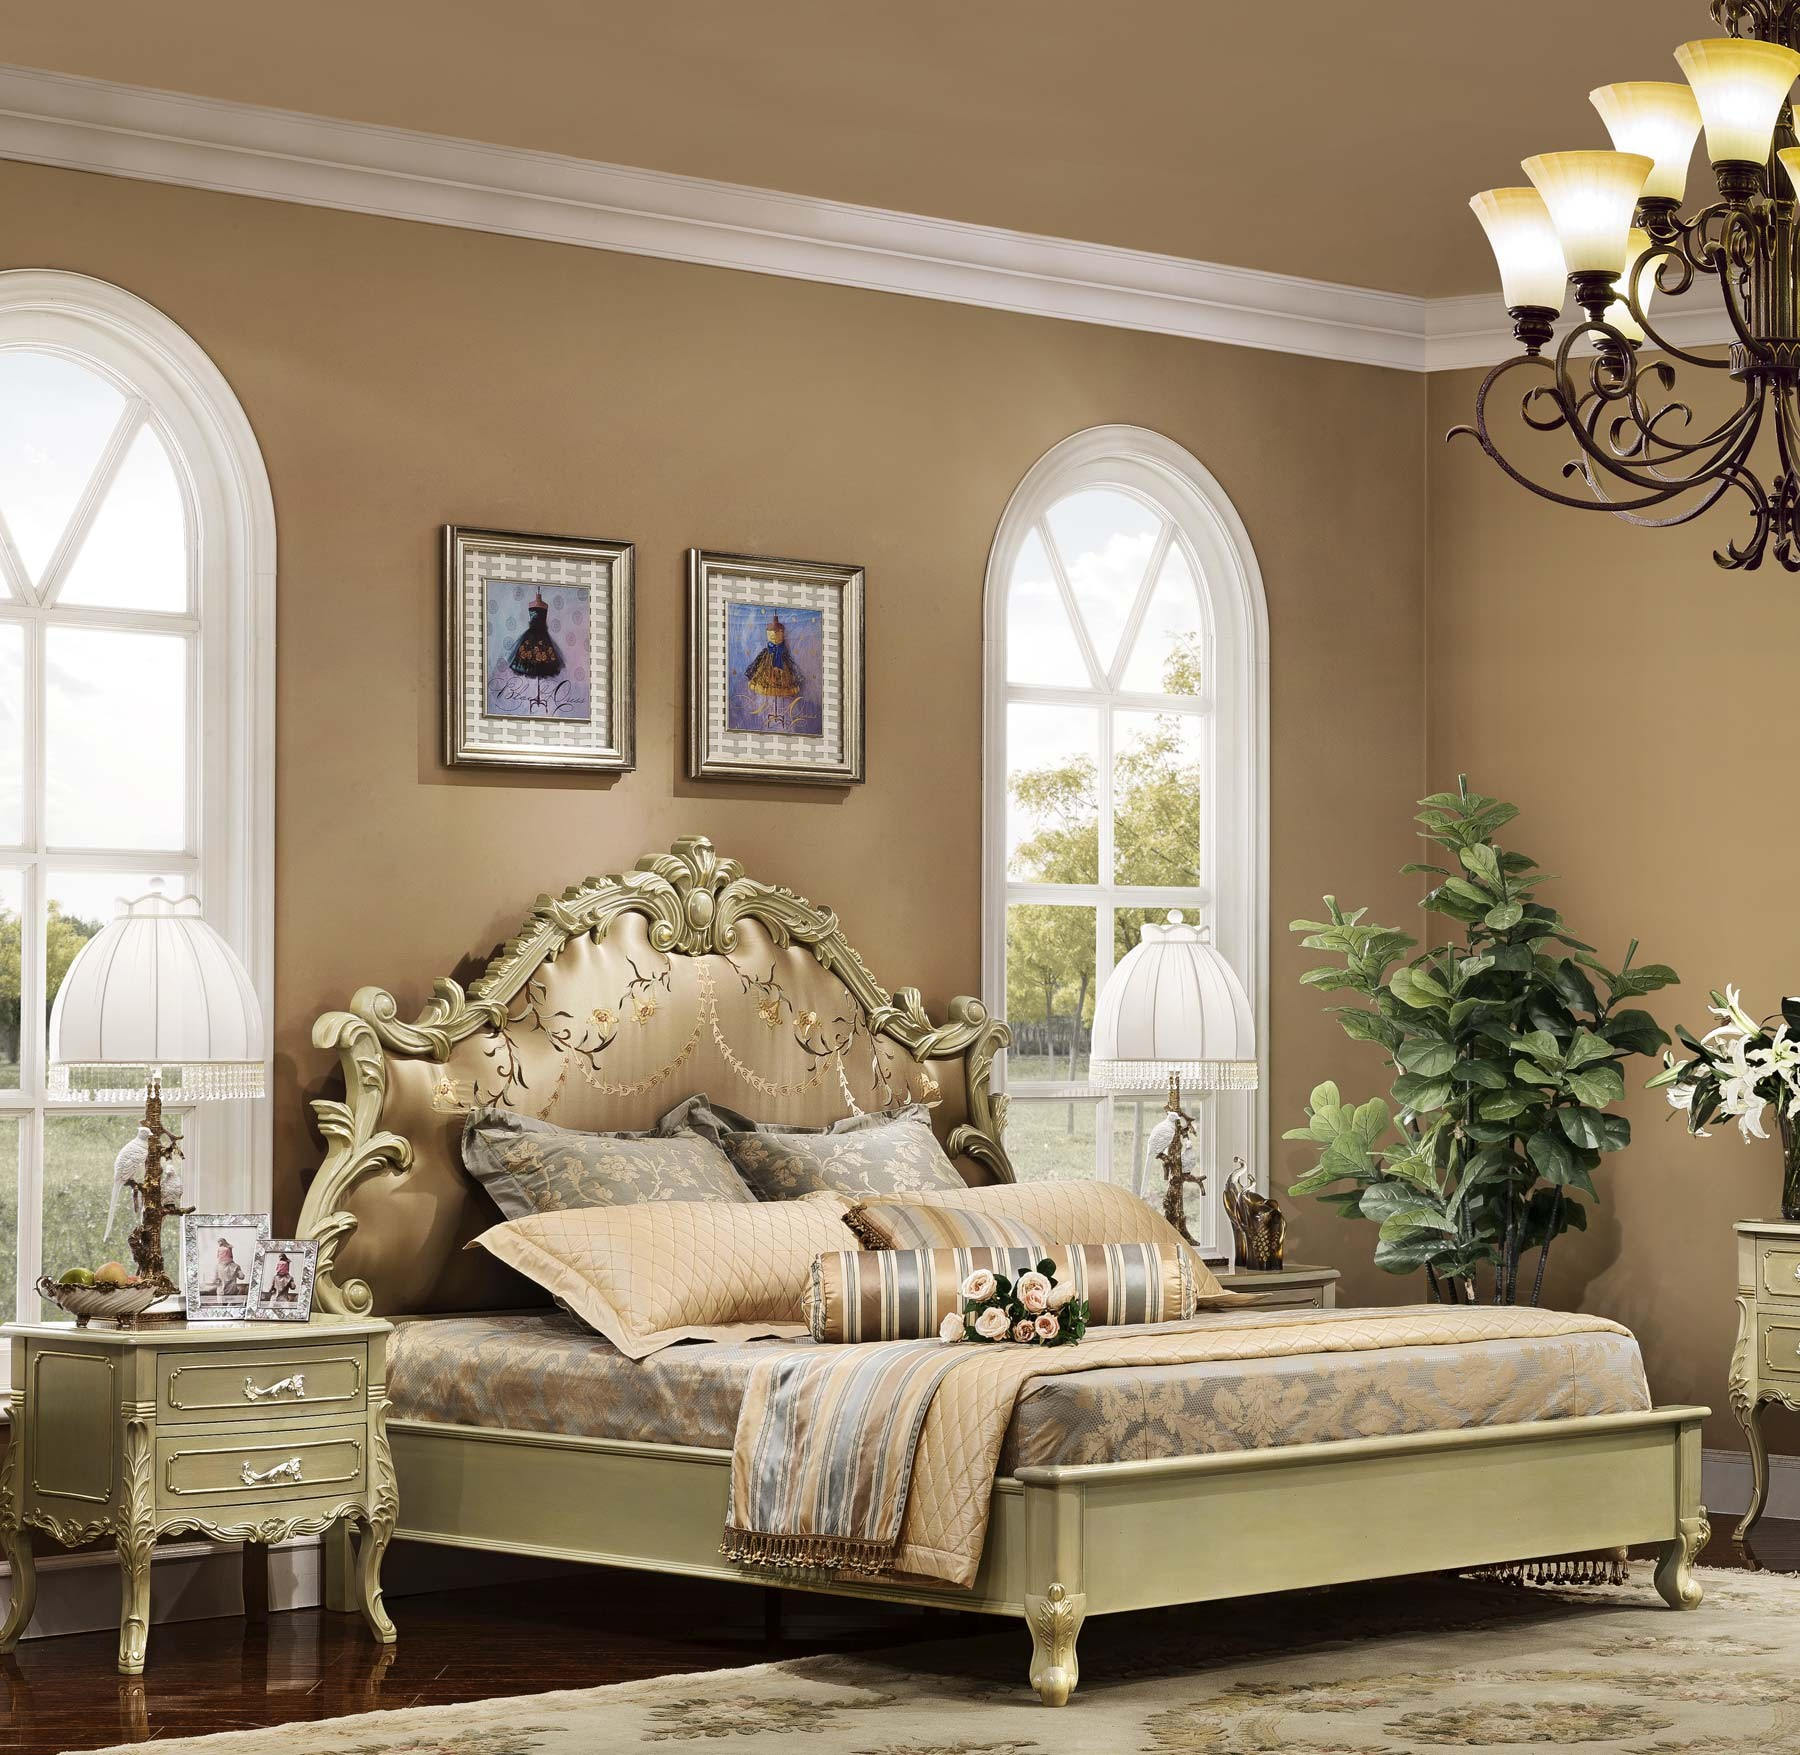 Langham Bed shown in Antique Sage finish